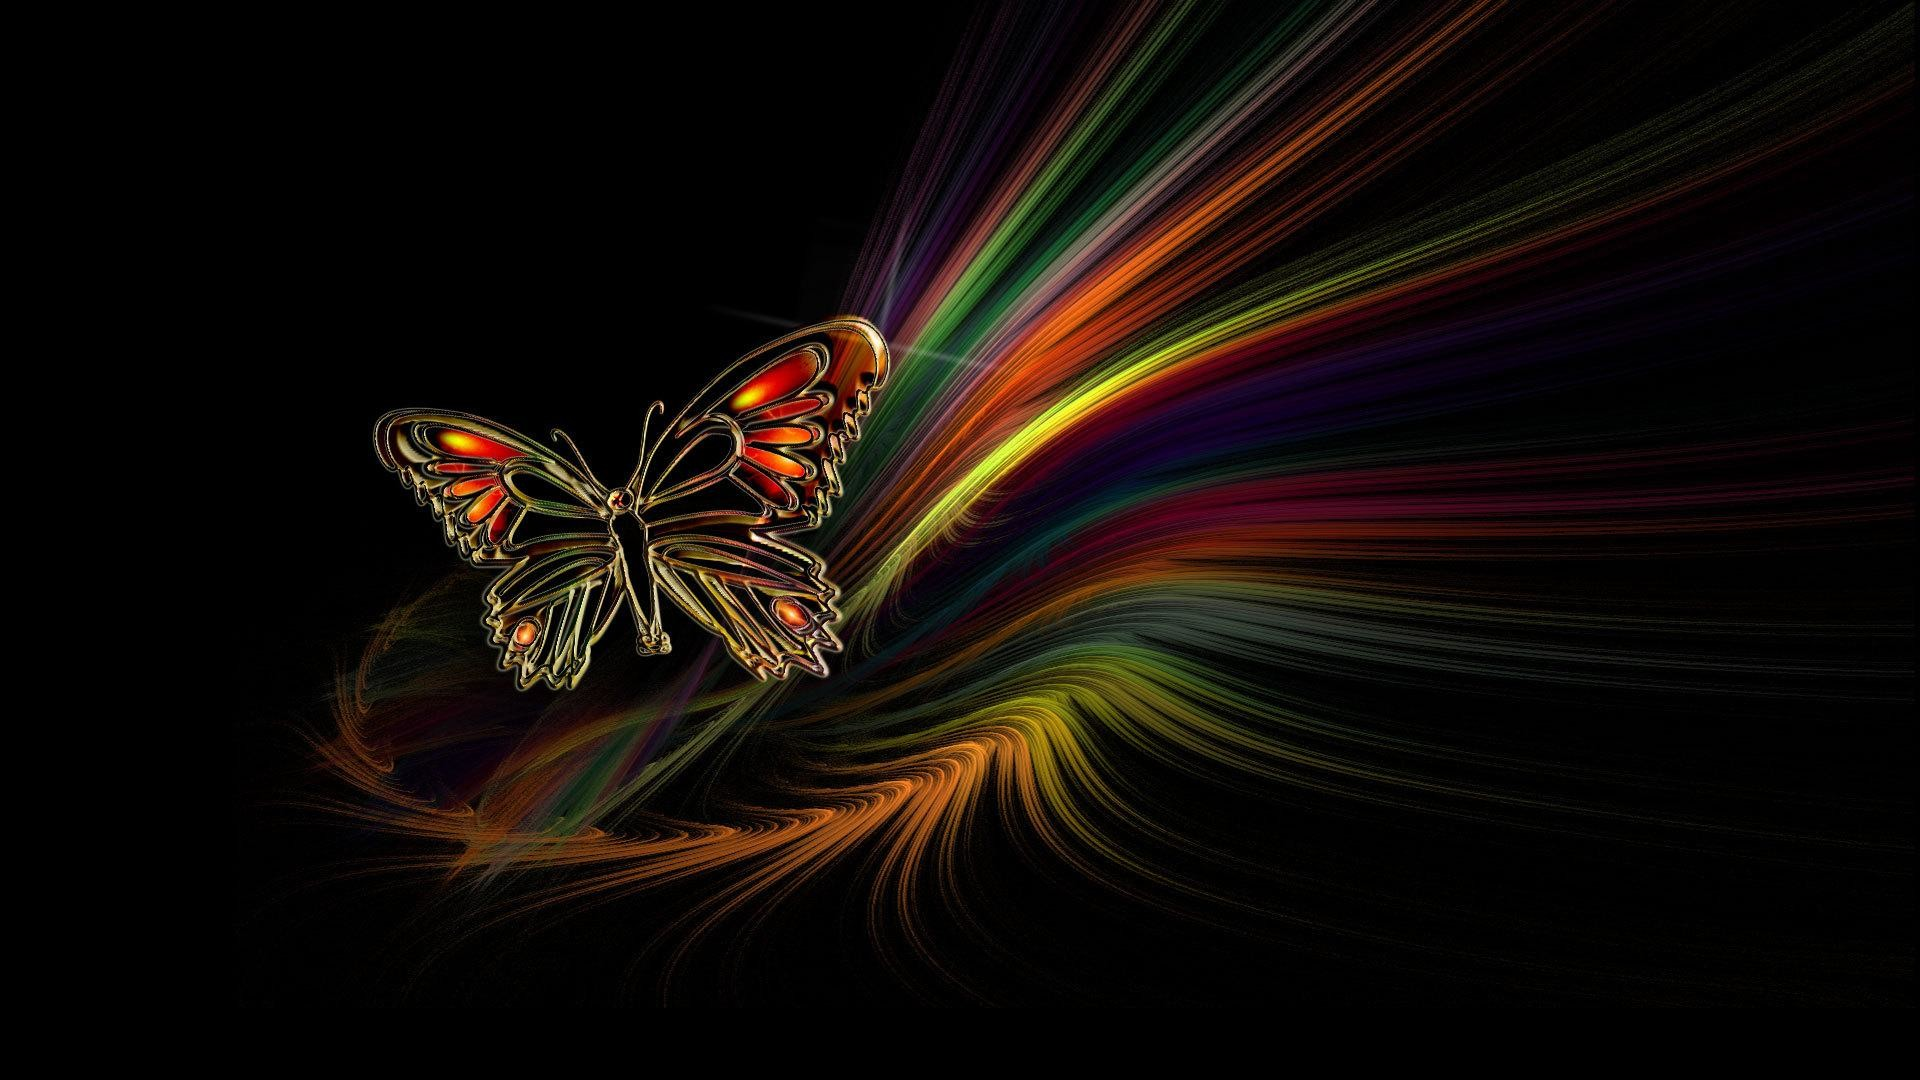 Butterfly Abstract HD Wallpaper Cool   Unique HD Wallpapers